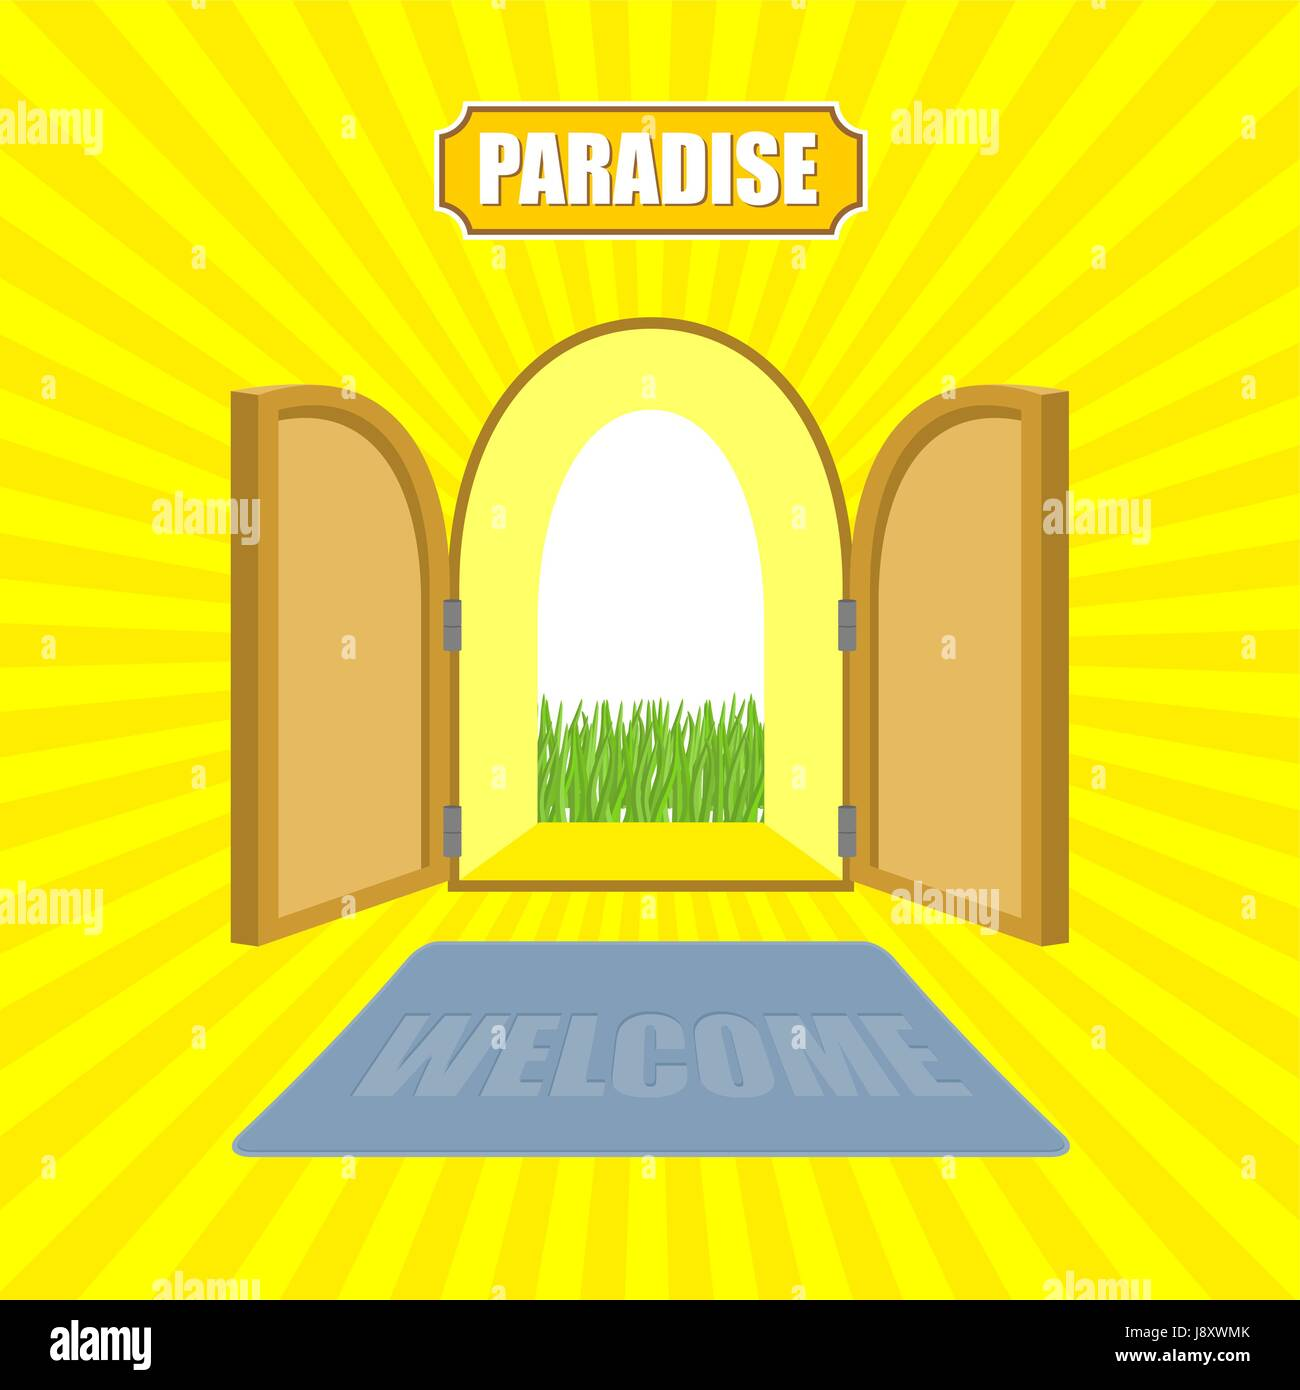 Open front door illustration Closed Open Gates Of Paradise Gardens Mat In Front Of Door Von Glow Solar Entrance To God Vector Illustration On Religious Topics Alamy Welcome To Paradise Open Gates Of Paradise Gardens Mat In Front Of